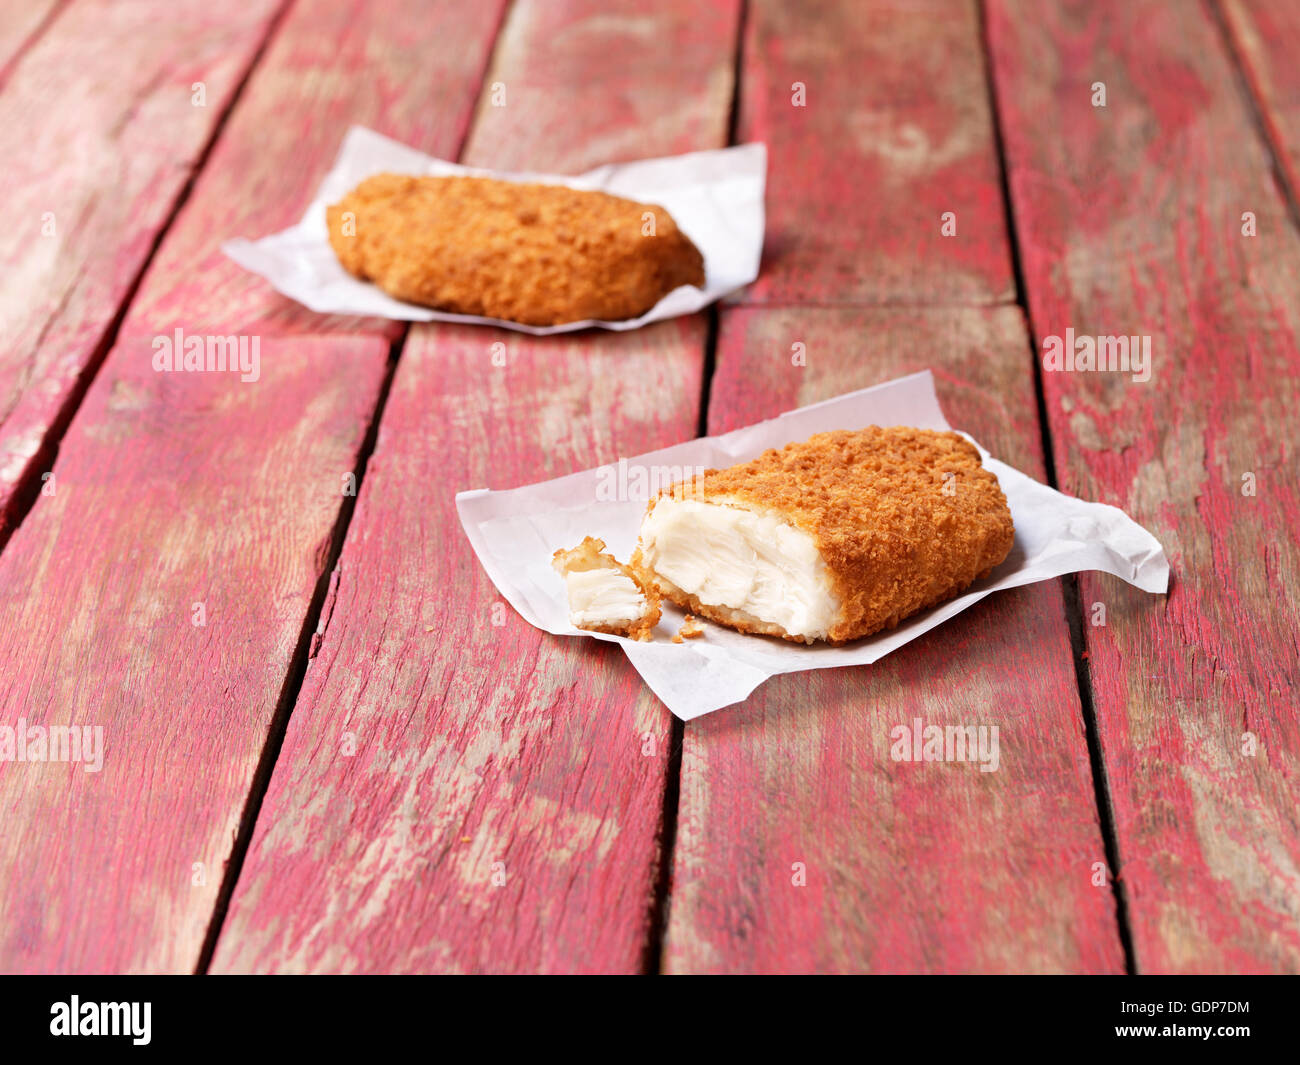 Food, fish, gluten free breaded cod on painted red wooden table - Stock Image